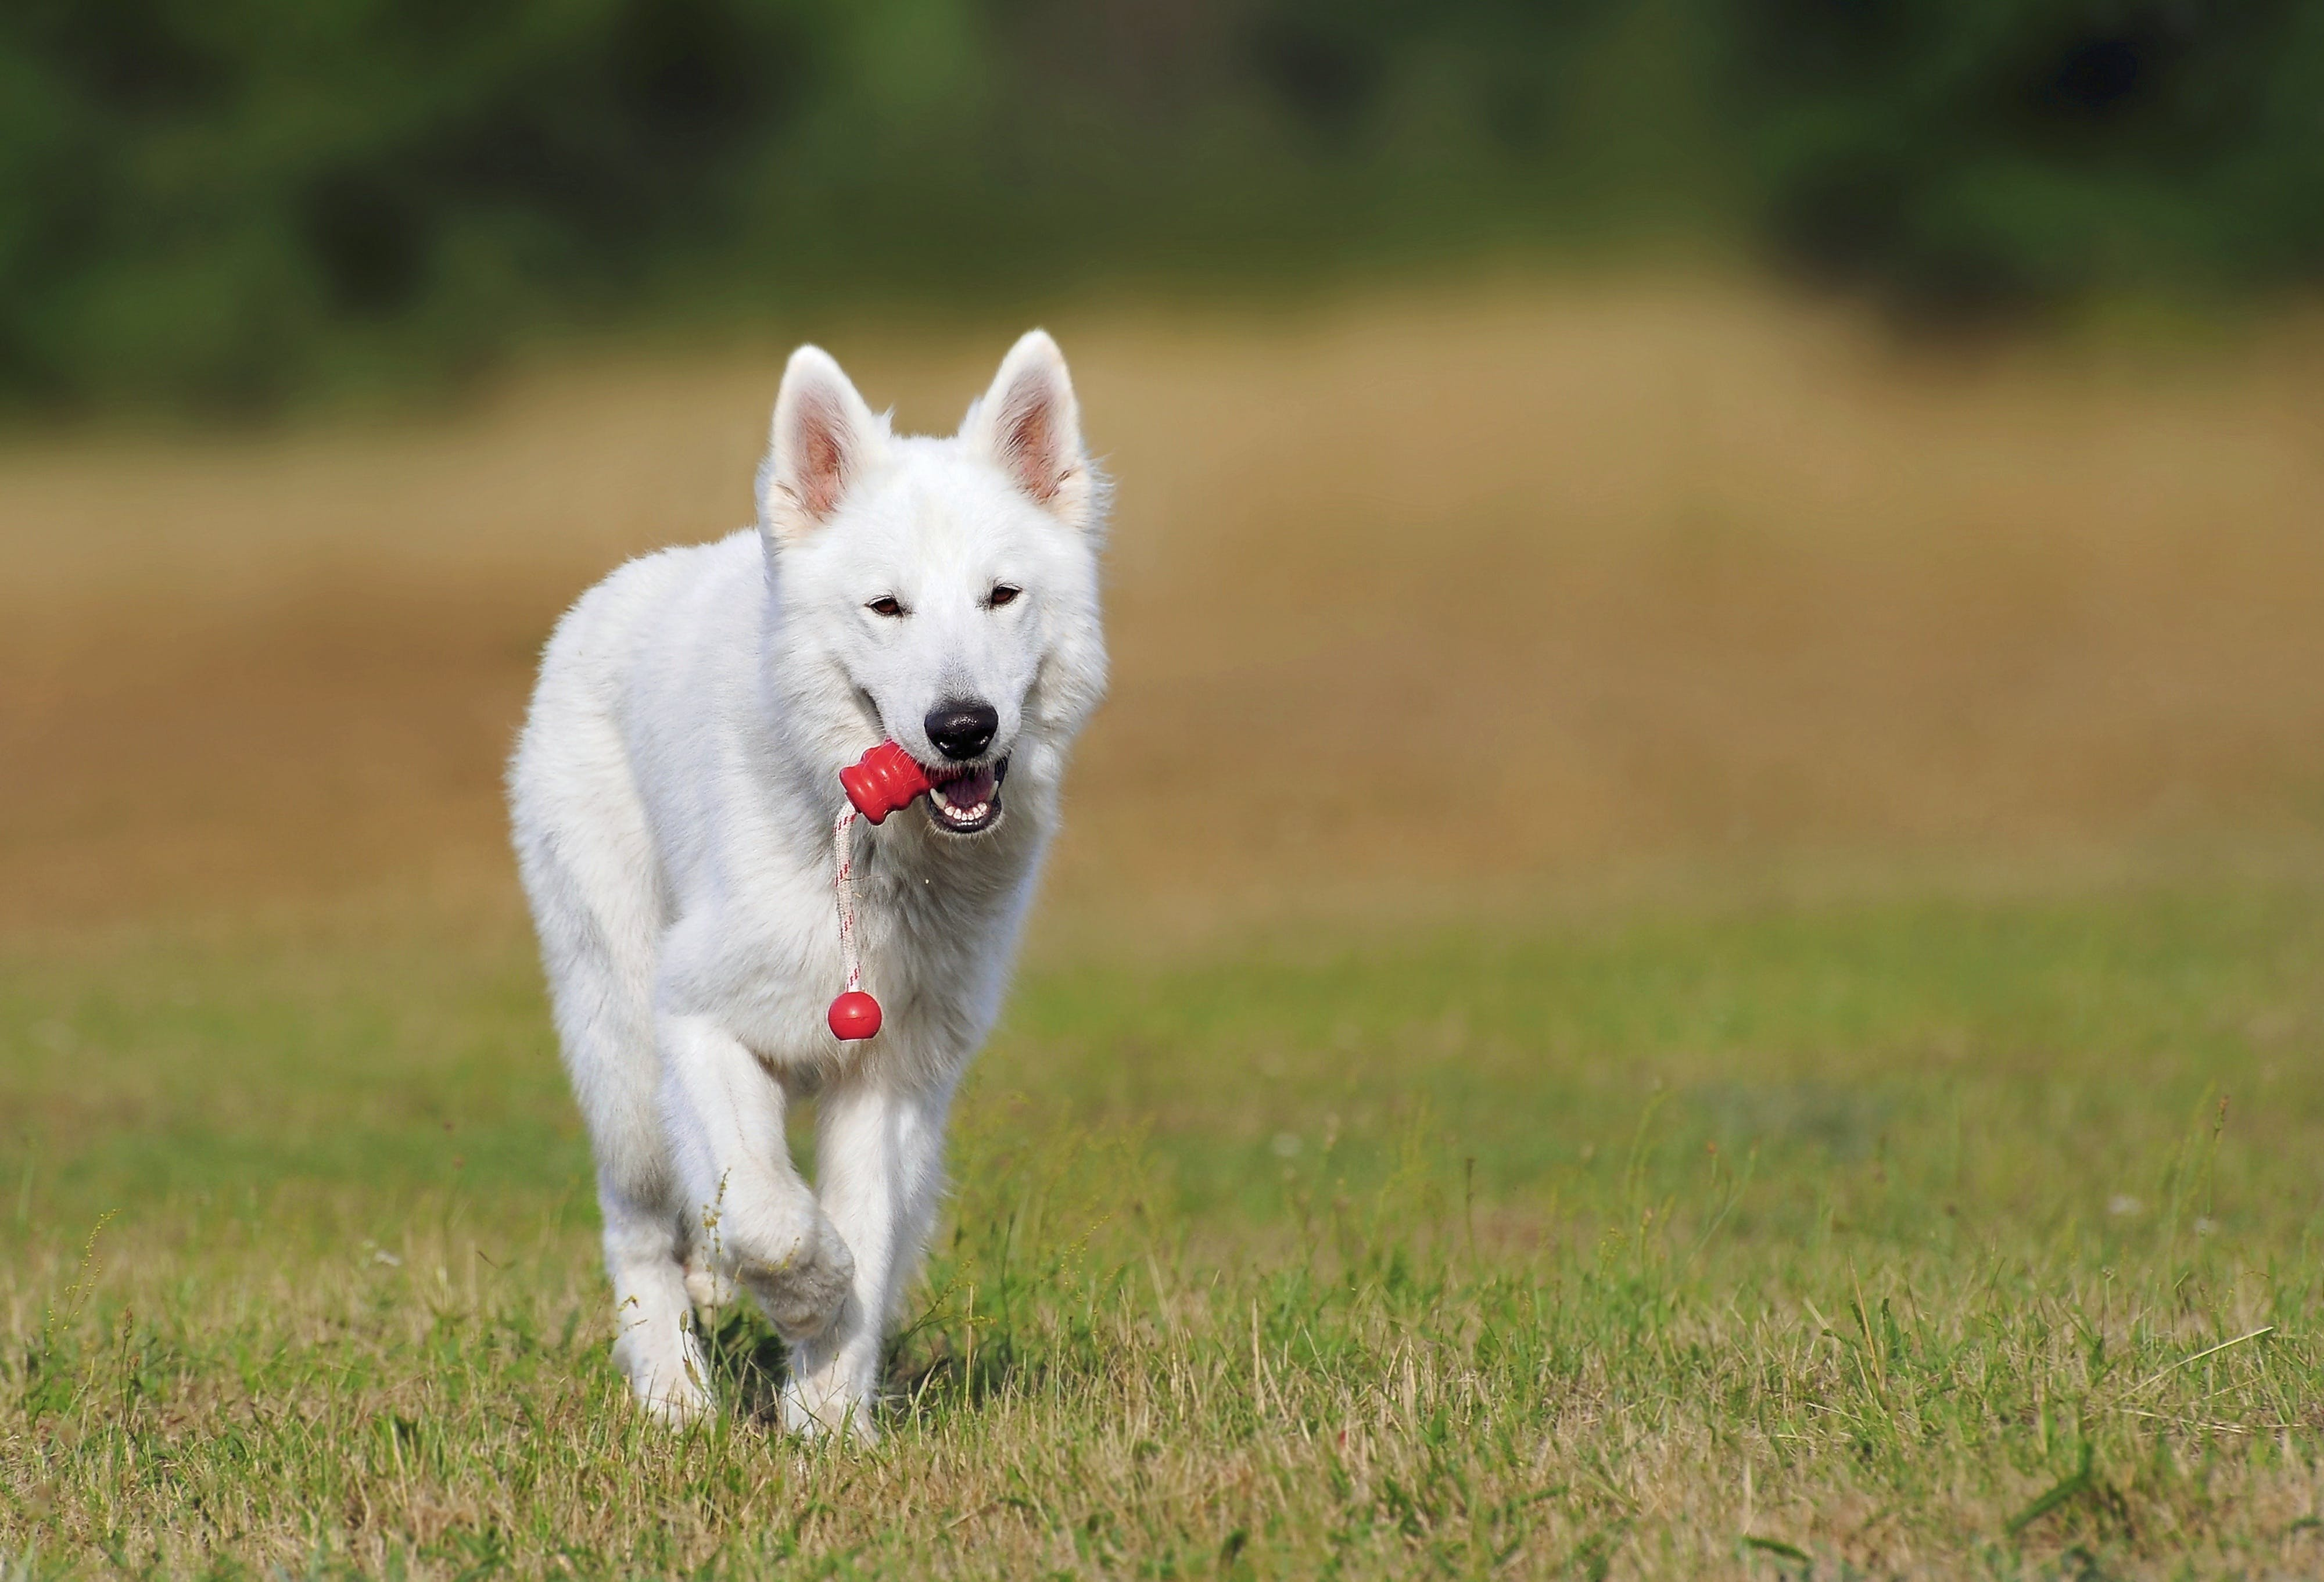 White Dog Running over Green Grass